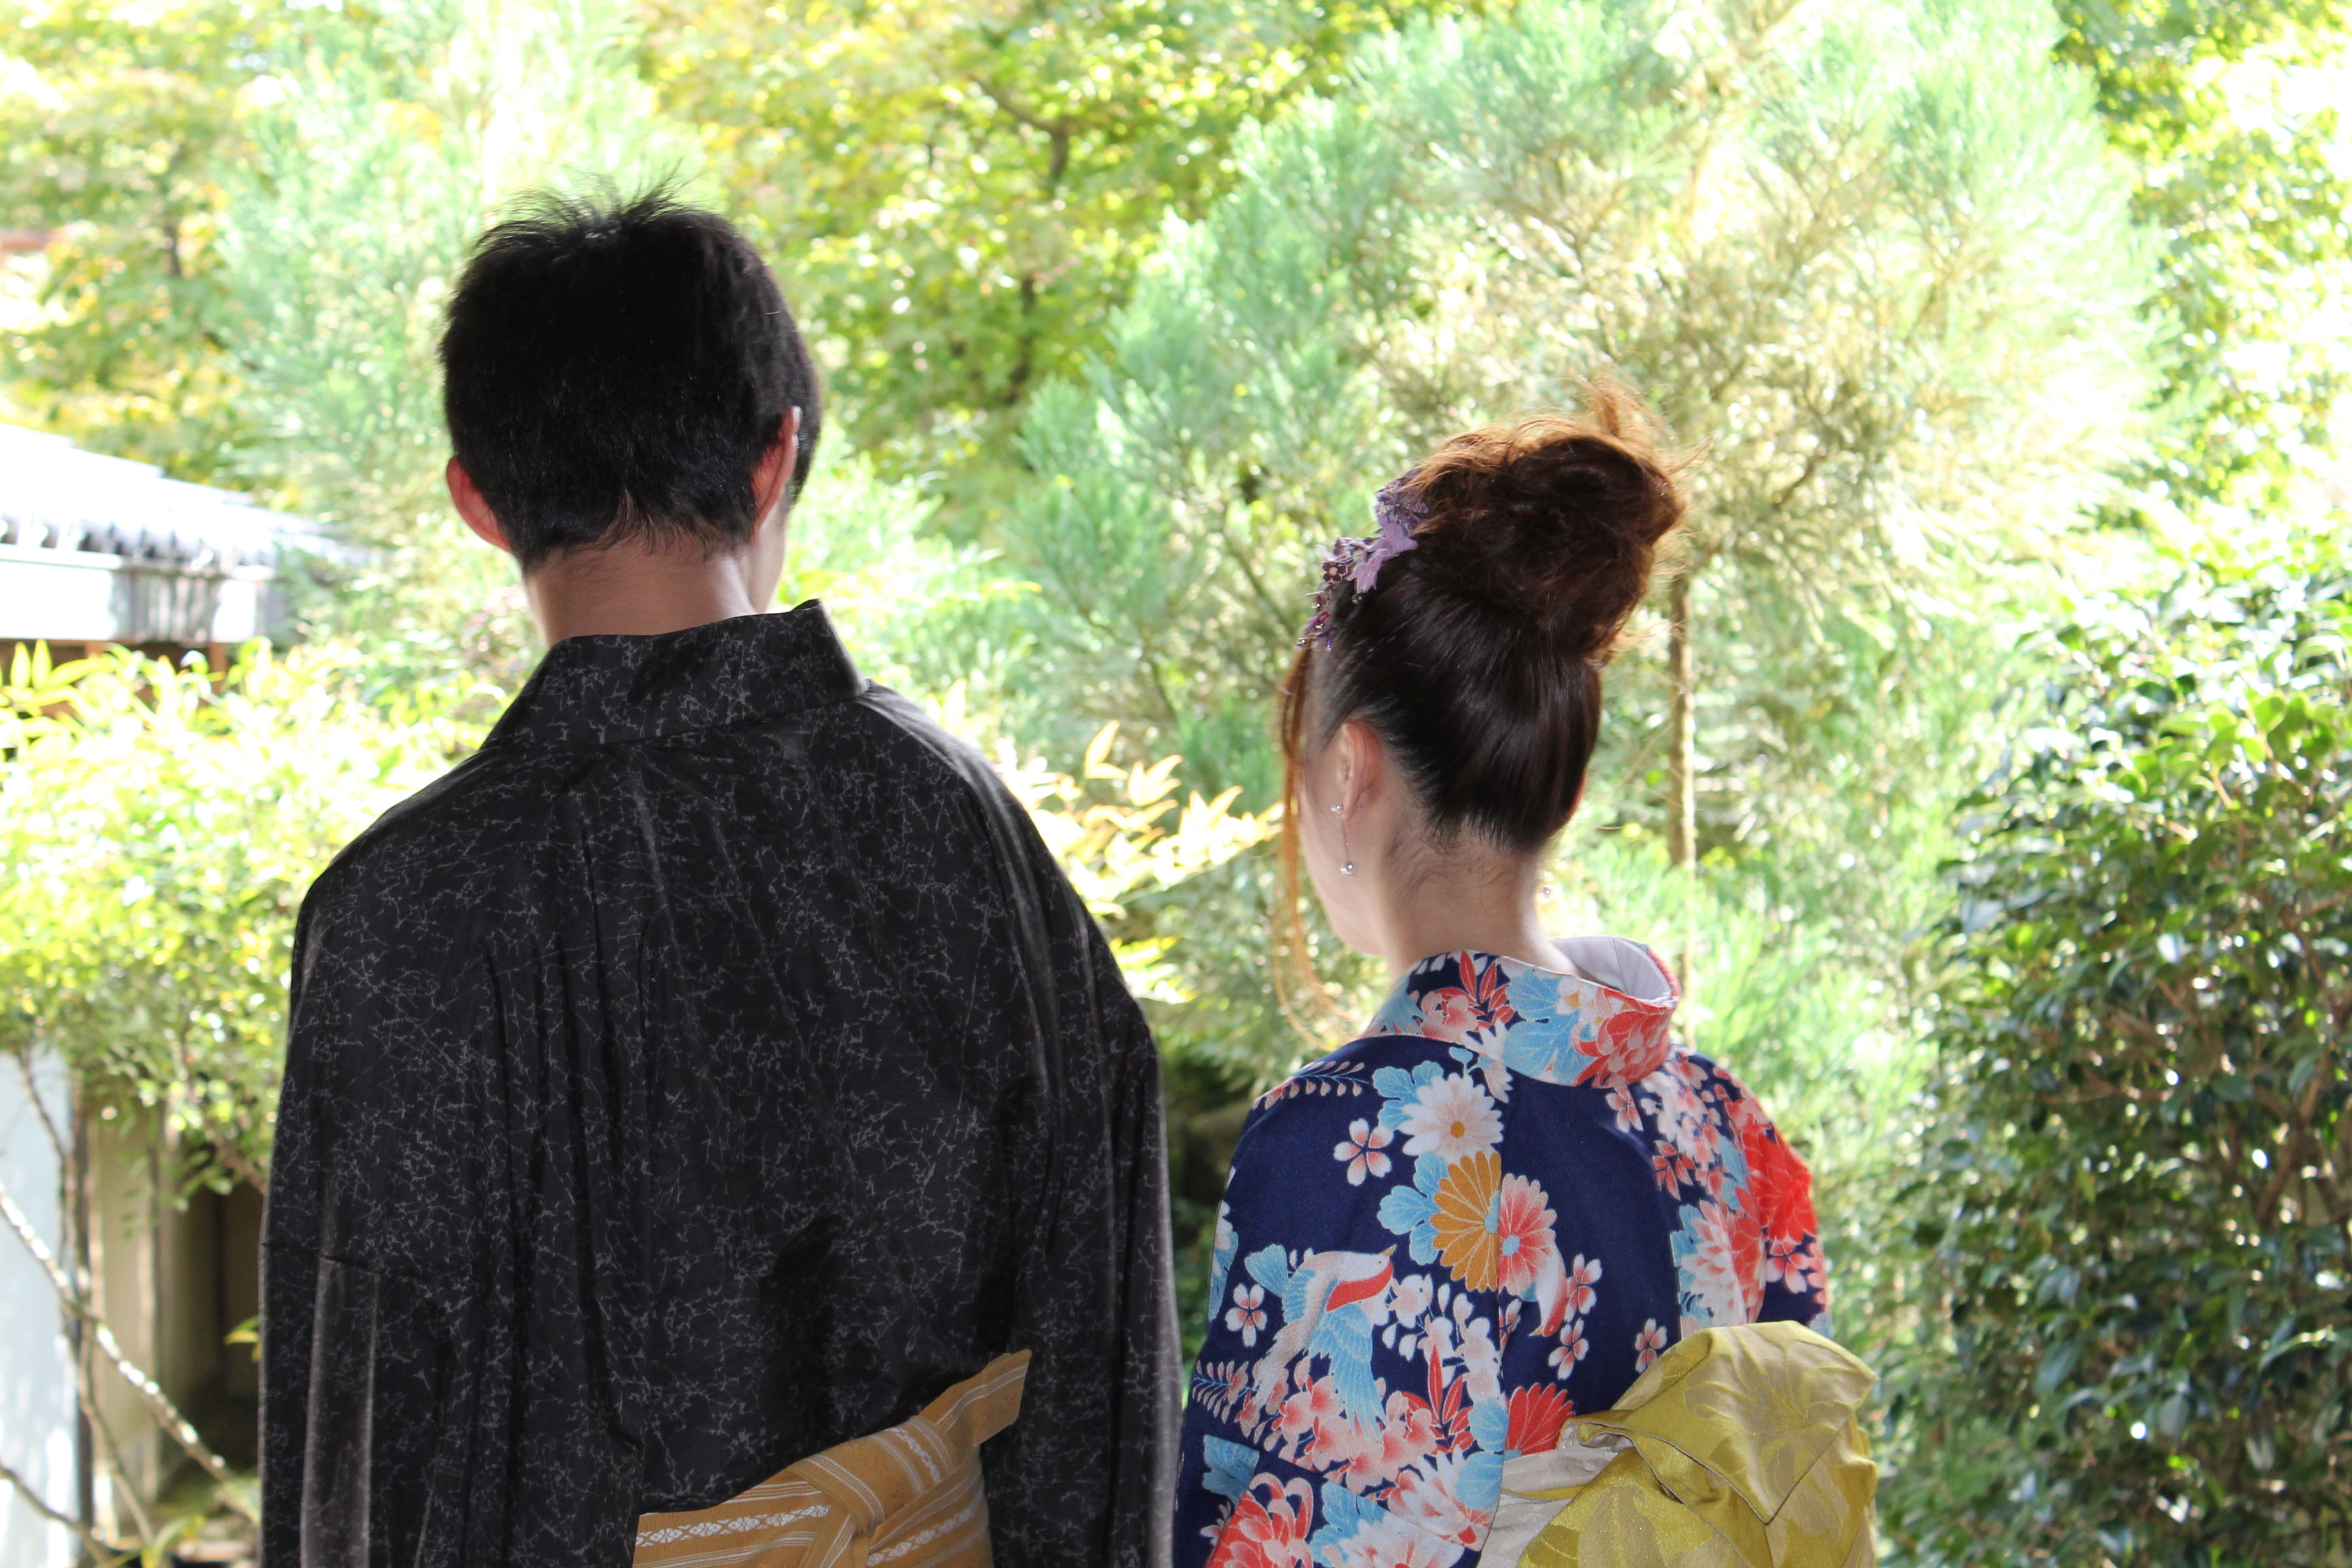 Kyoto newlyweds going sightseeing in search of their roots